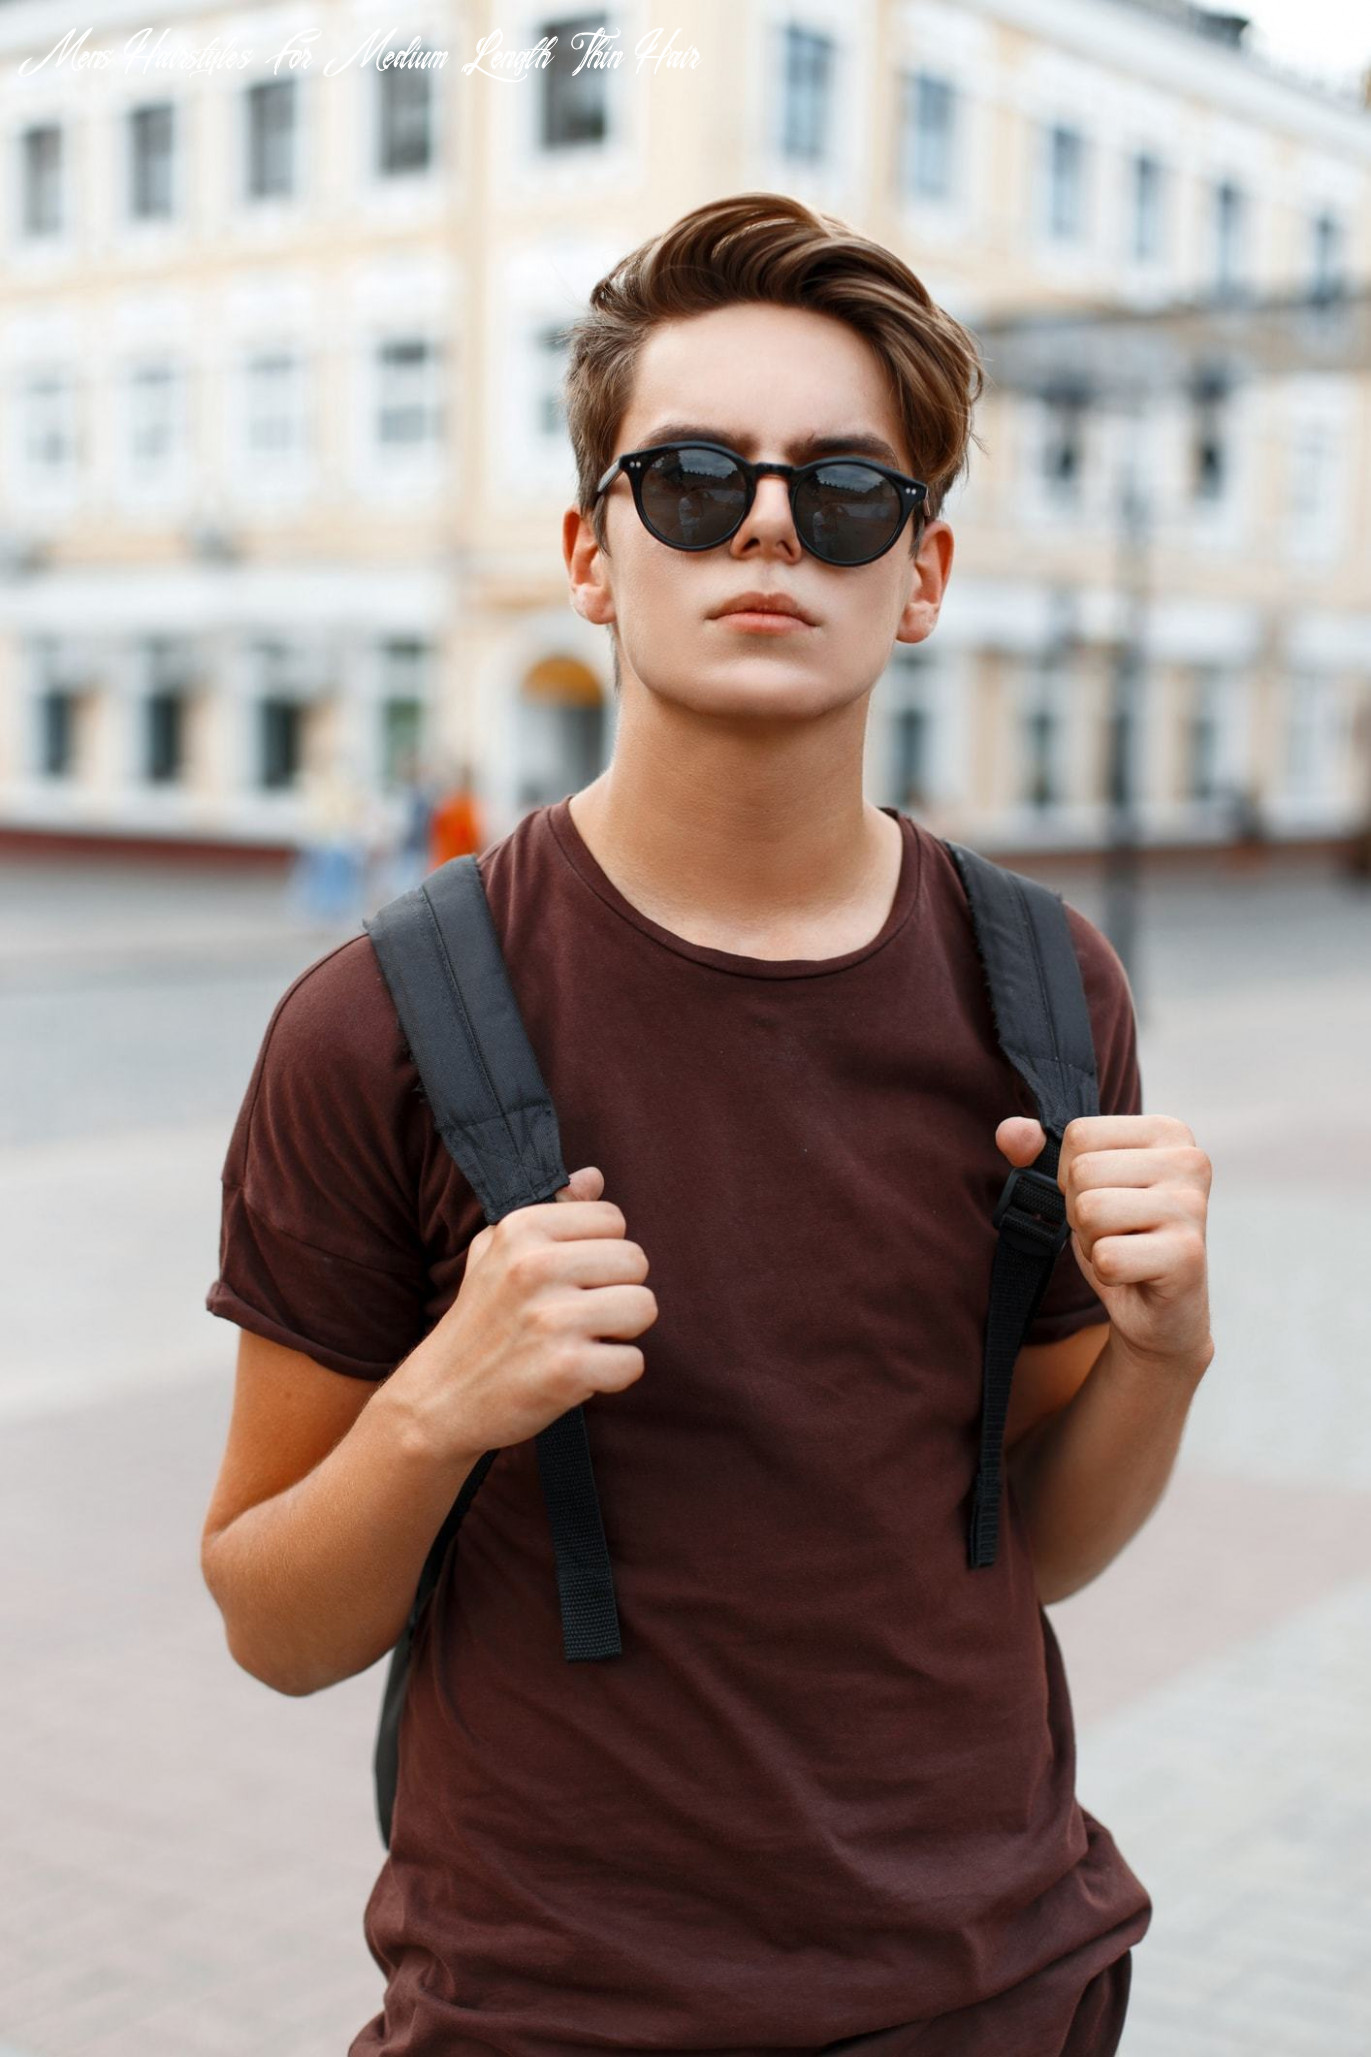 Hairstyles for men with fine hair: 9 best styles for this hair type mens hairstyles for medium length thin hair